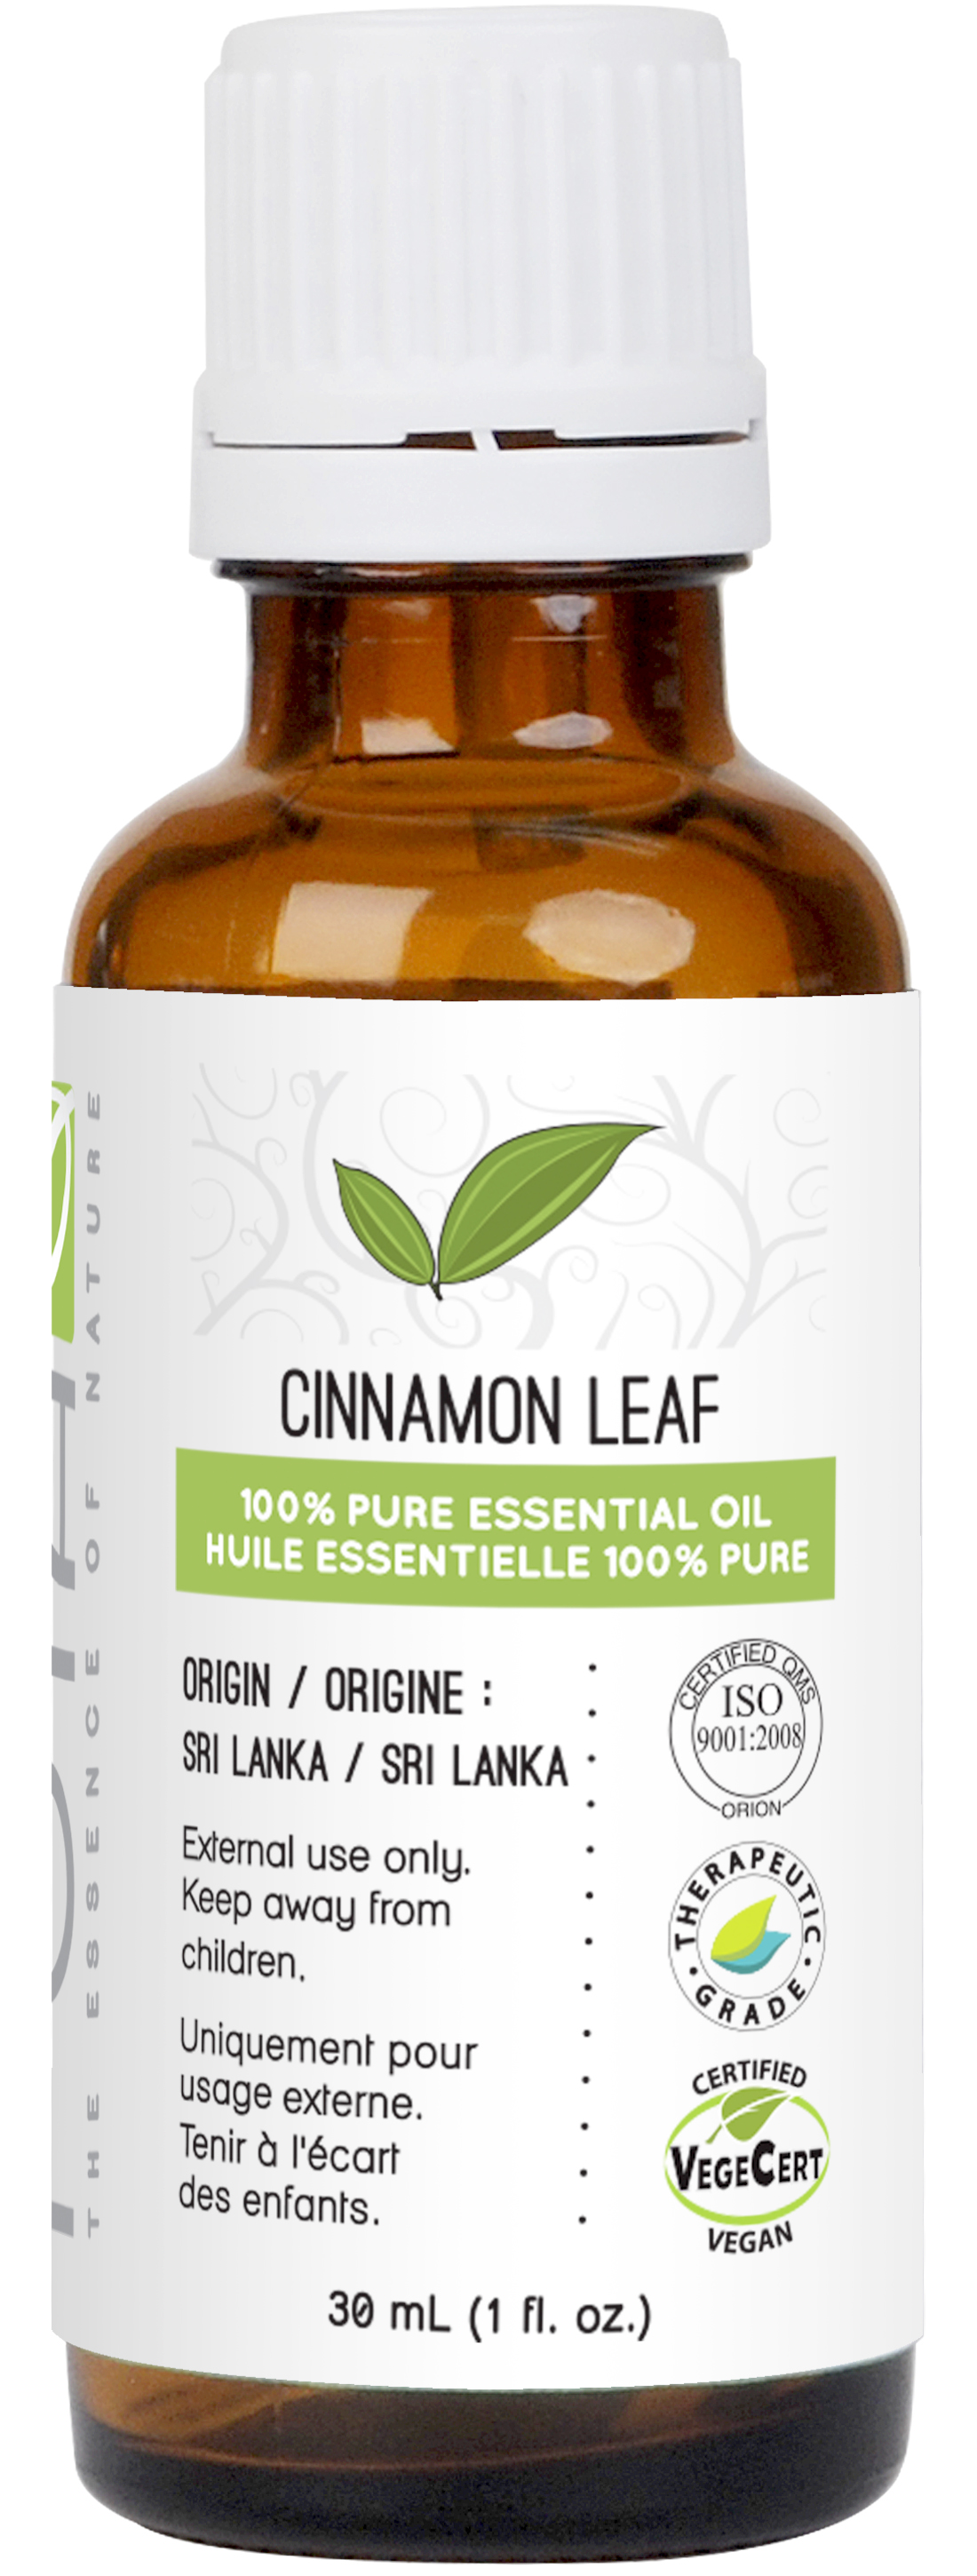 Cinnamon Bark Leaf - 1 oz.